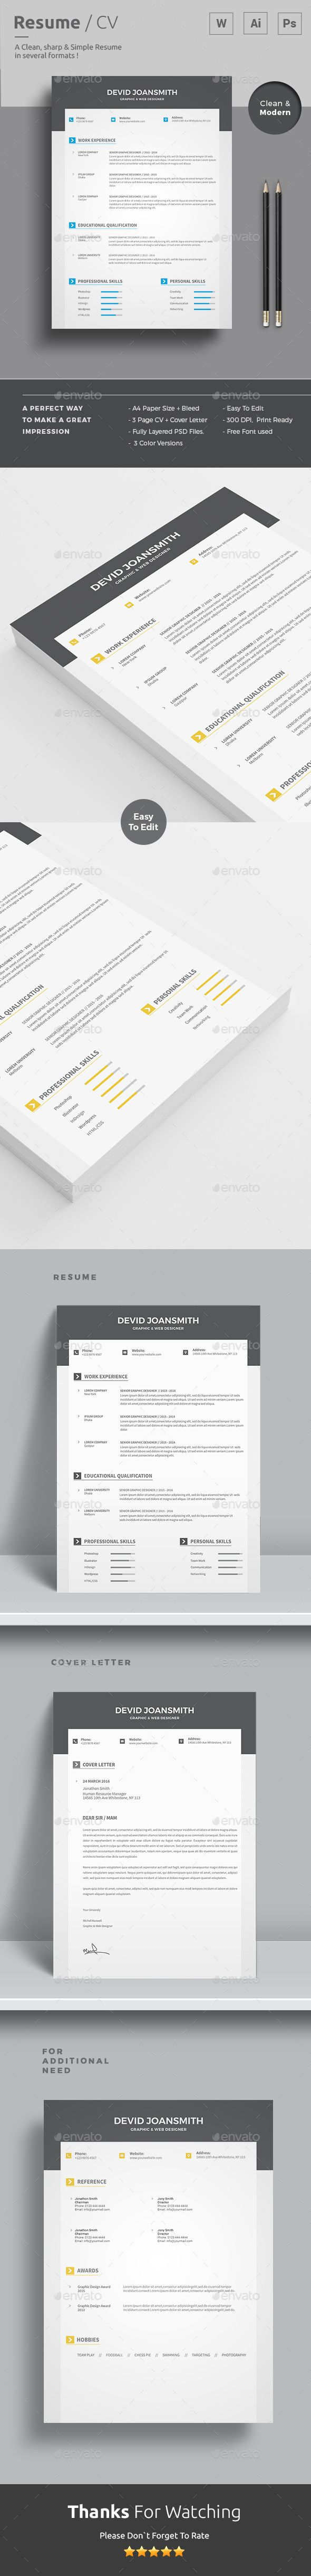 Resume Template | #CVTemplate + Cover Letter | MS Word+ PSD + AI Versions with color versions. Download and Edit http://graphicriver.net/item/resume/15277890?ref=themedevisers